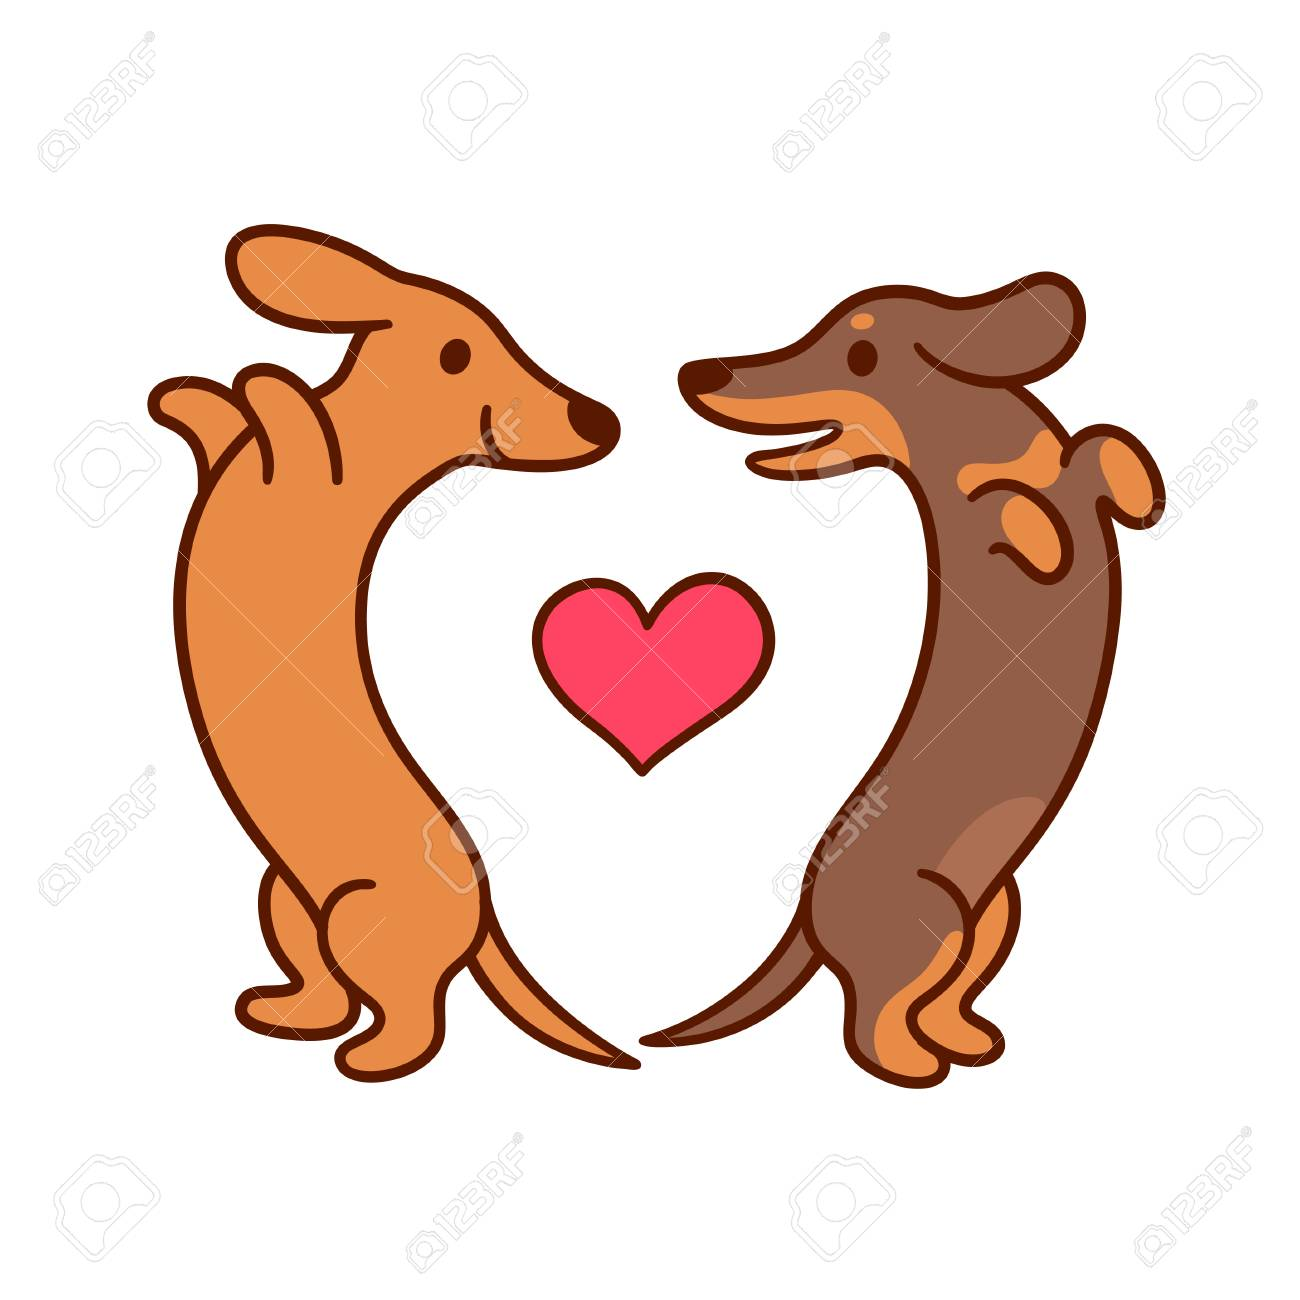 hight resolution of cute cartoon dachshunds in love adorable wiener dogs looking at each other in heart shape